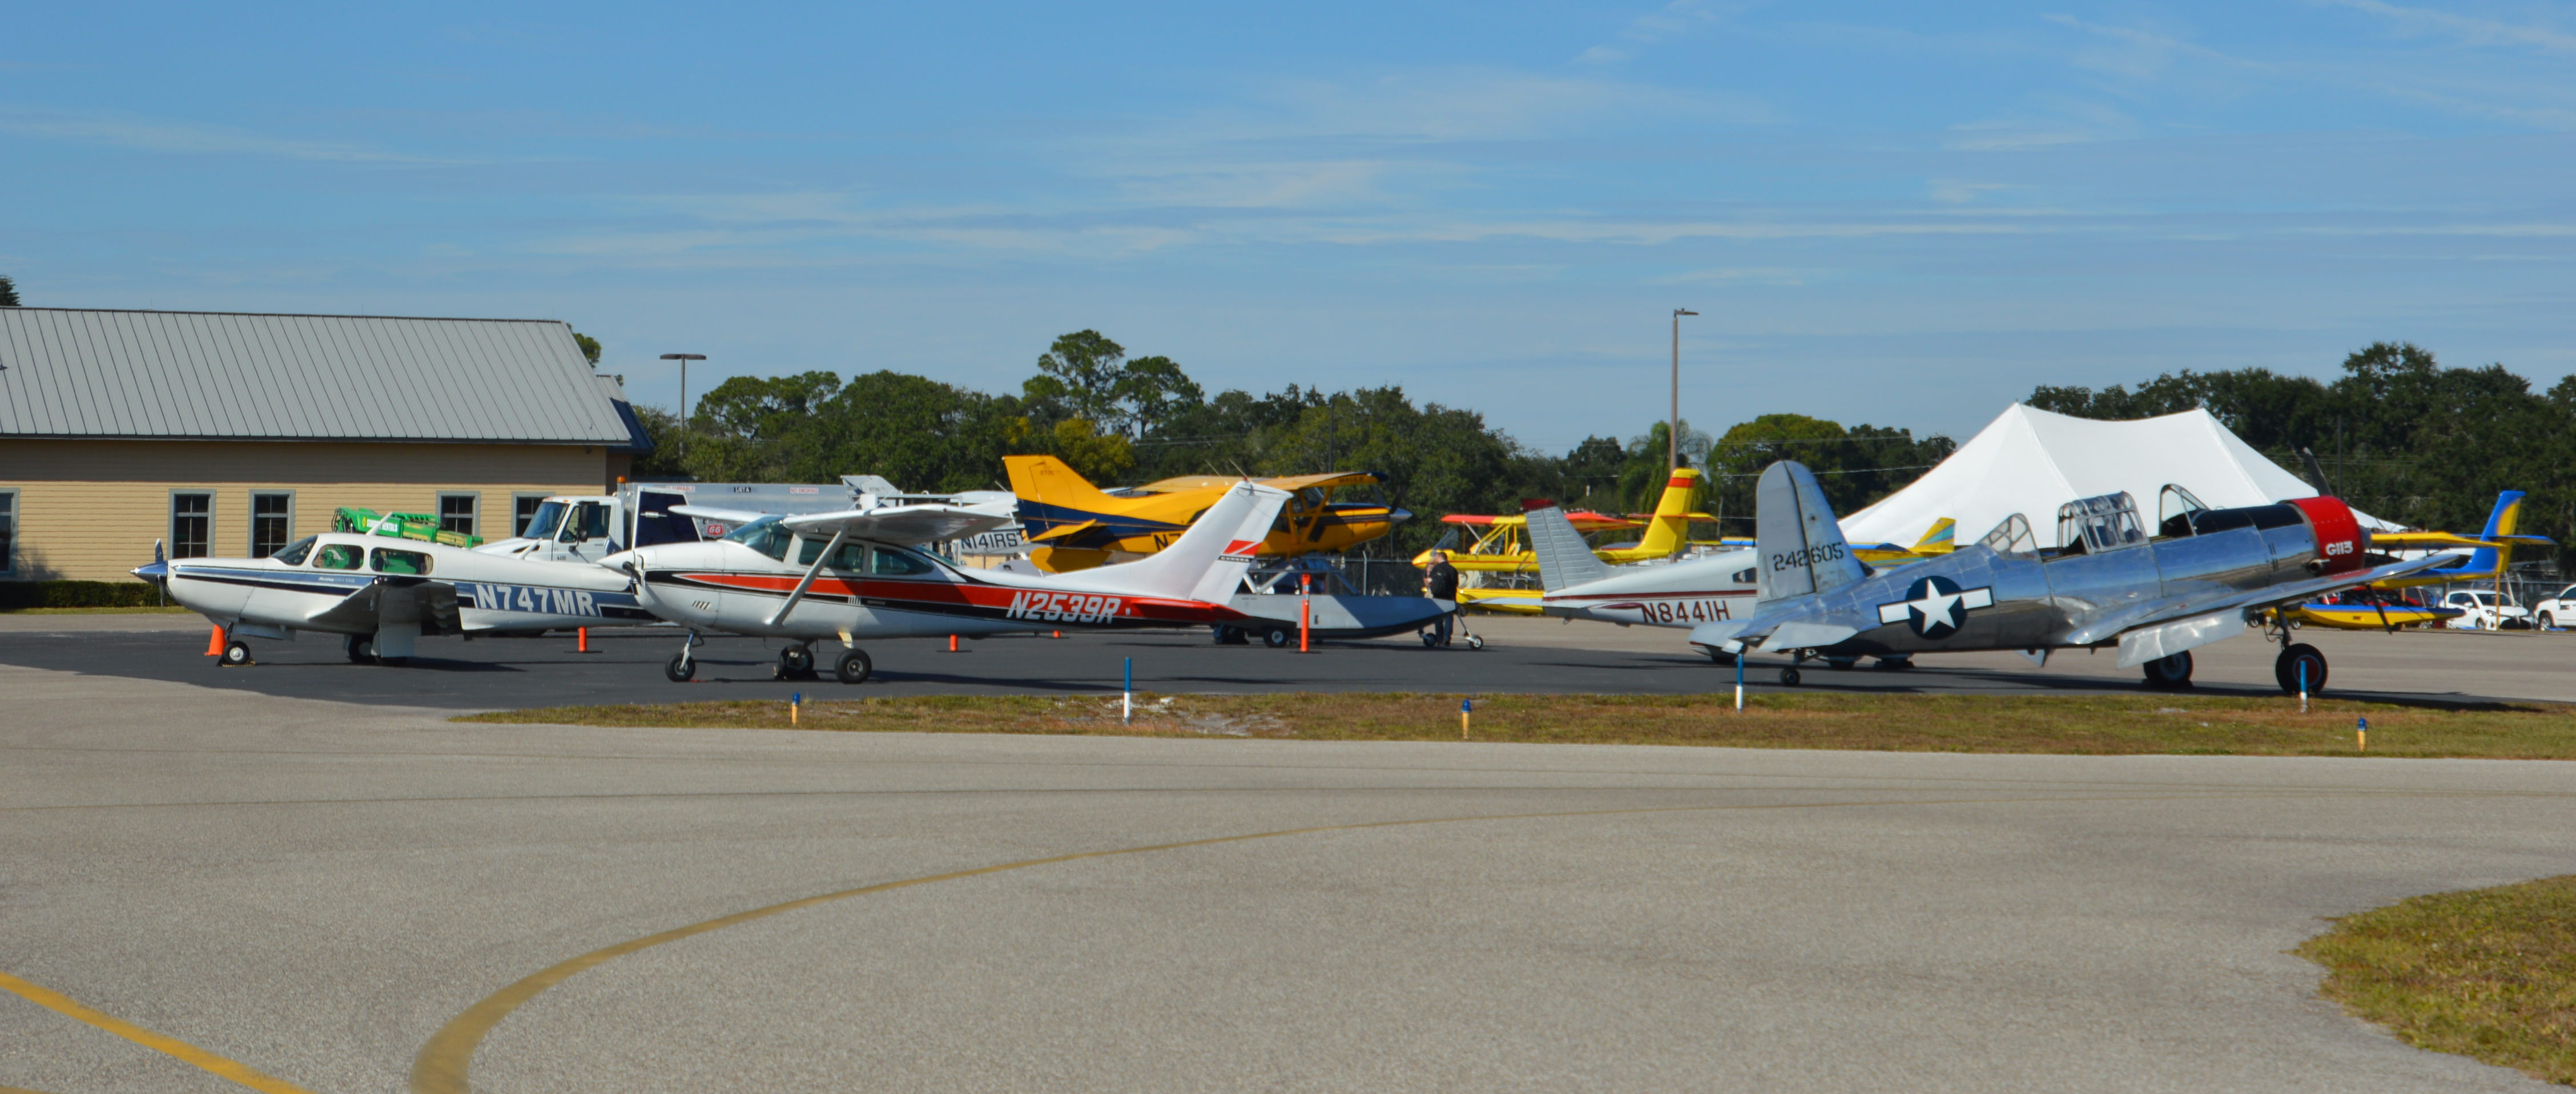 airport city of winter haven